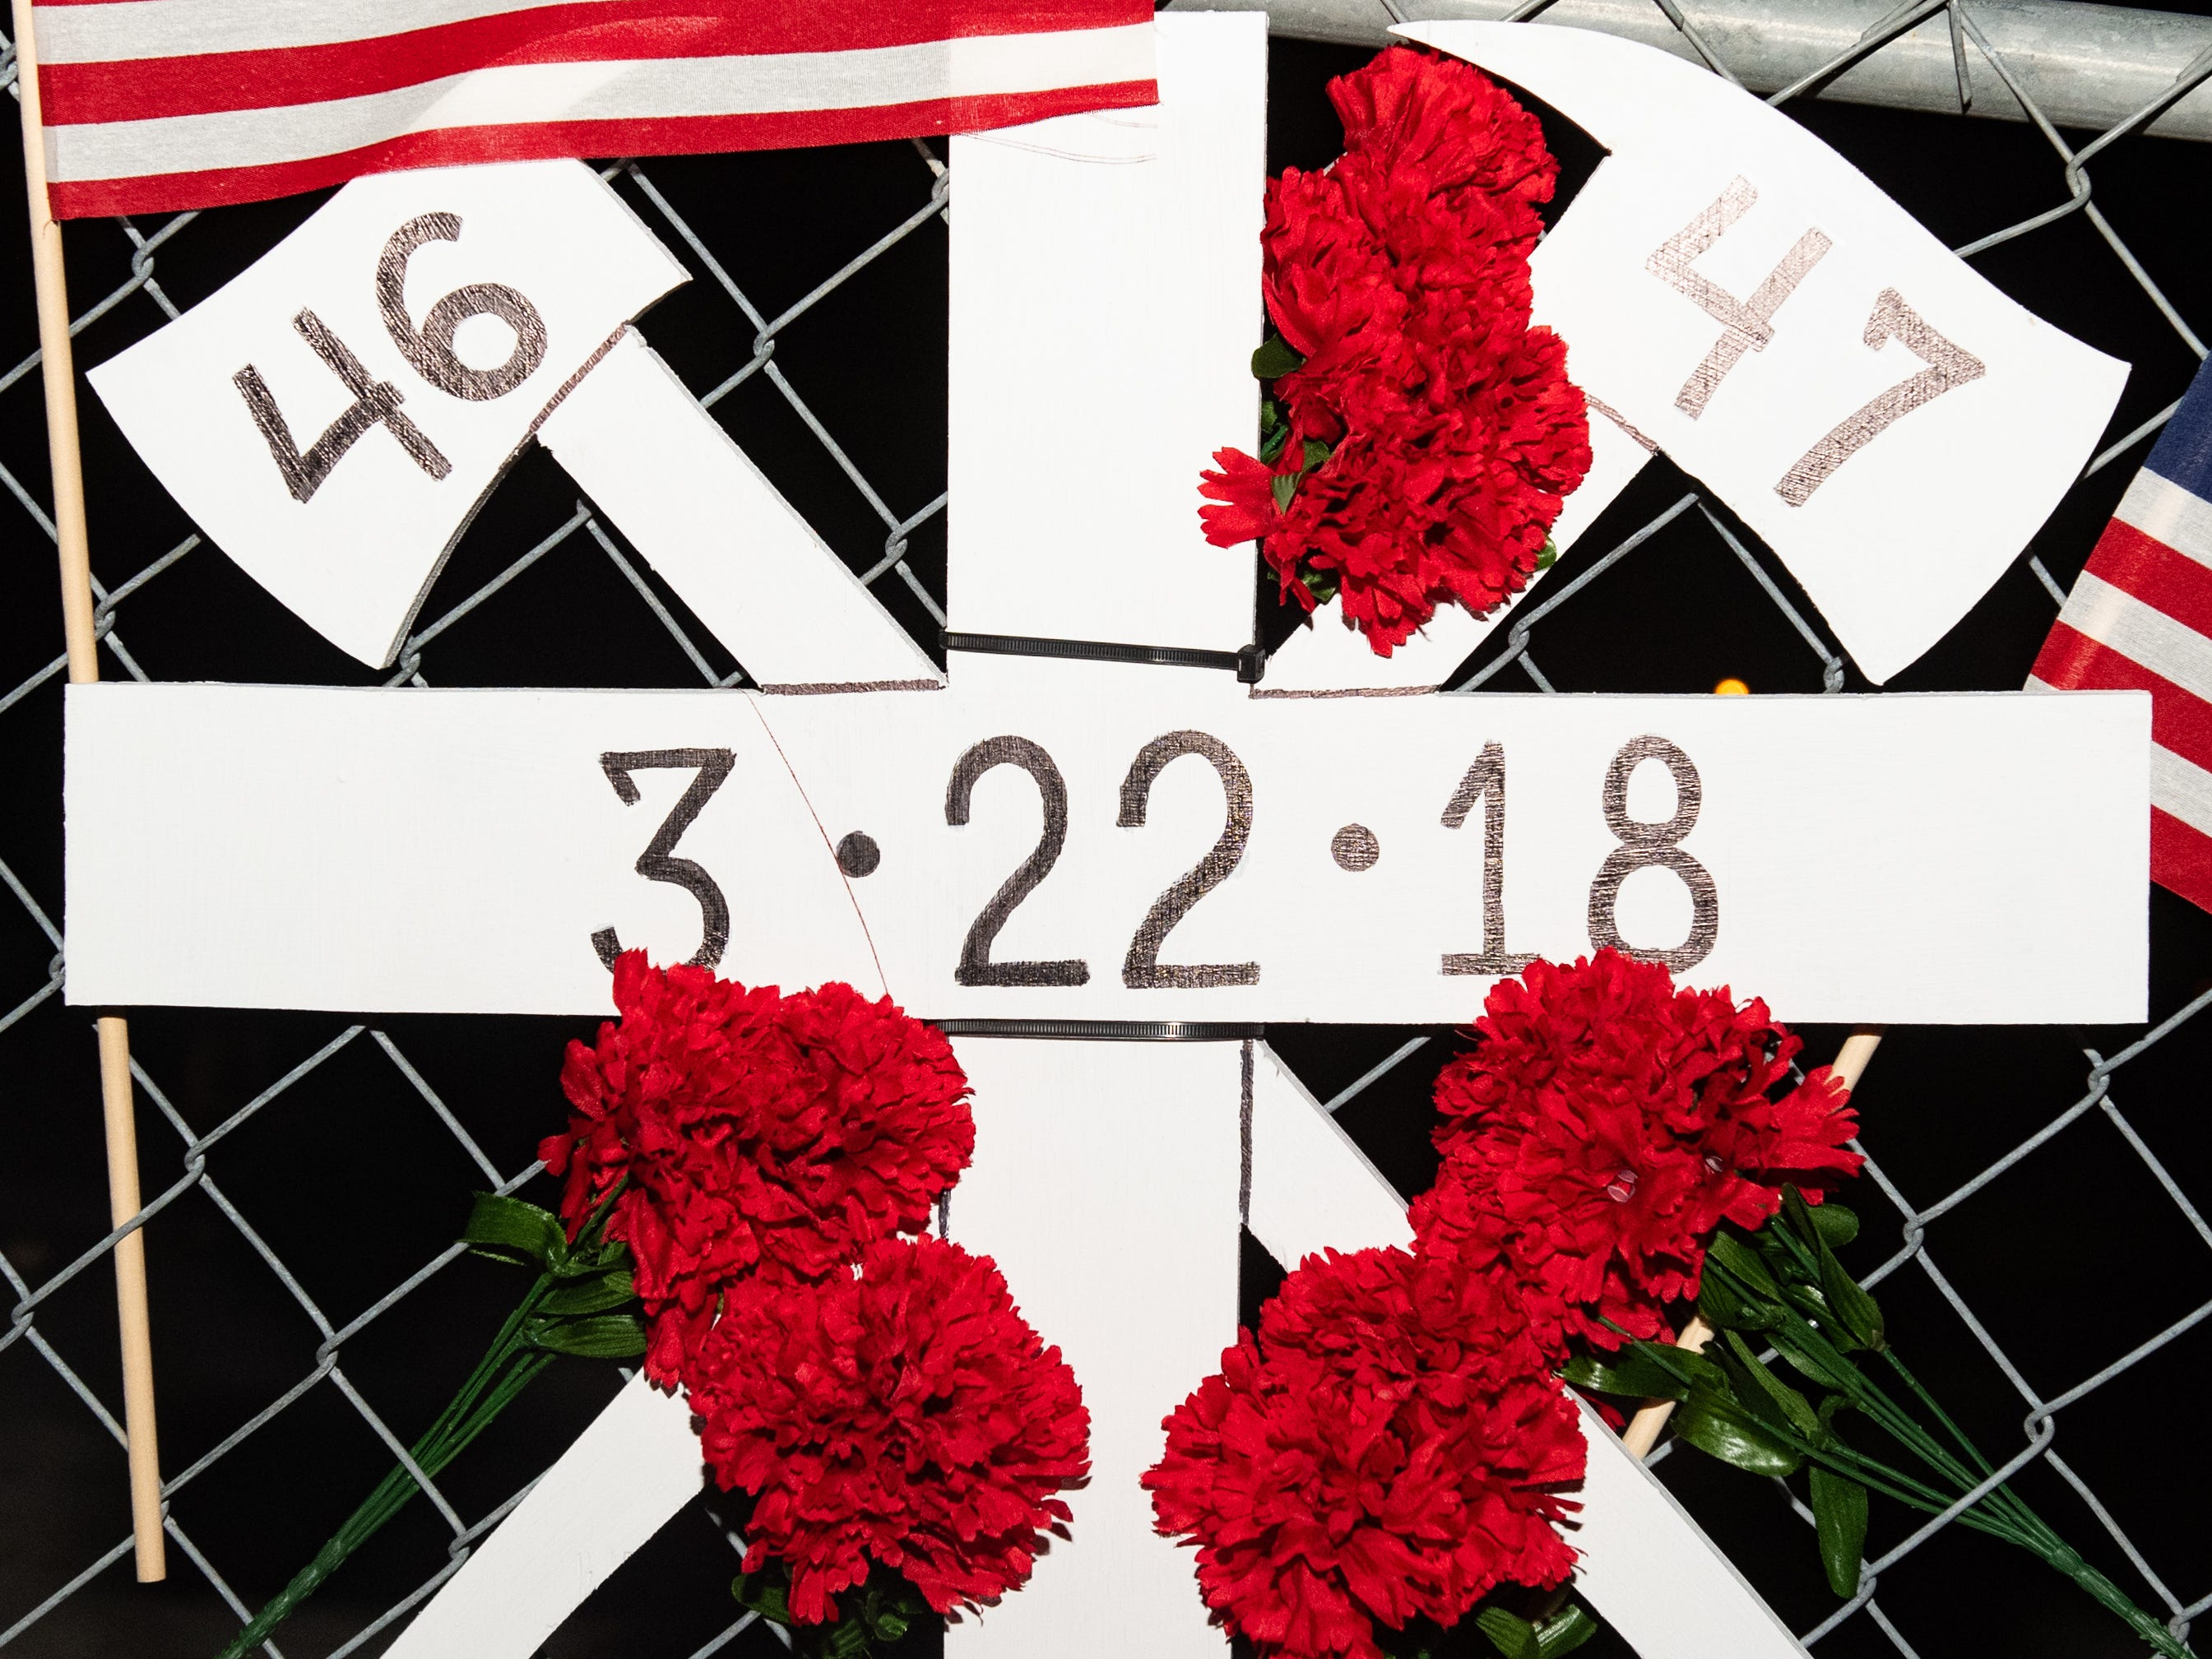 Each firefighters' number, along with the date of their death, is written on the handcrafted memorial, March 22, 2019.